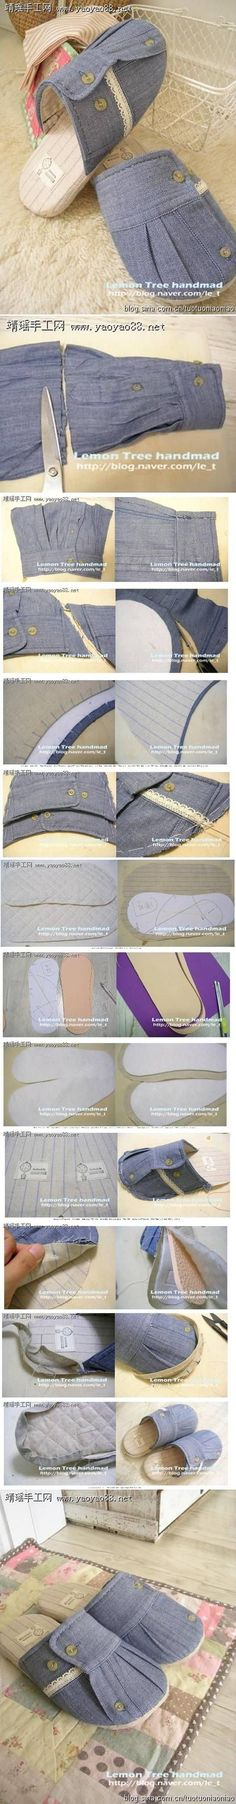 DIY Old Clothes Cuff Slipper DIY Projects | UsefulDIY.com Follow Us on Facebook ==> http://www.facebook.com/UsefulDiy